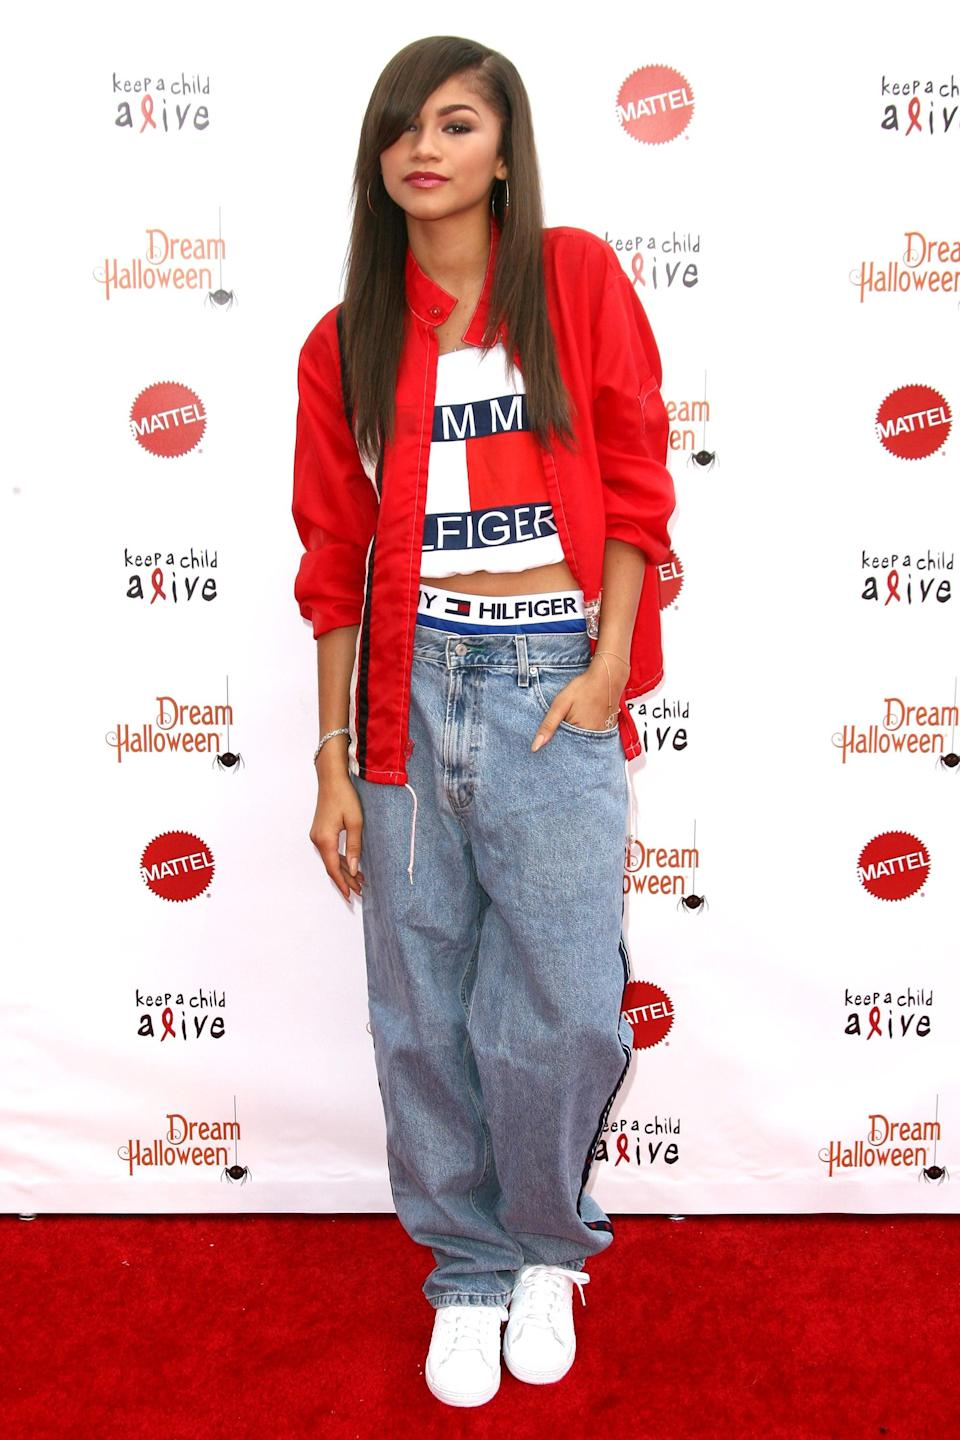 """<p><a class=""""link rapid-noclick-resp"""" href=""""https://www.popsugar.co.uk/Zendaya"""" rel=""""nofollow noopener"""" target=""""_blank"""" data-ylk=""""slk:Zendaya"""">Zendaya</a>'s been referencing for years. While attending a Keep a Child Alive event just before <a class=""""link rapid-noclick-resp"""" href=""""https://www.popsugar.co.uk/Halloween"""" rel=""""nofollow noopener"""" target=""""_blank"""" data-ylk=""""slk:Halloween"""">Halloween</a> in 2013, she wore a logo-heavy Tommy Hilfiger outfit nearly identical to the one worn by <a class=""""link rapid-noclick-resp"""" href=""""https://www.popsugar.co.uk/tag/Aaliyah"""" rel=""""nofollow noopener"""" target=""""_blank"""" data-ylk=""""slk:Aaliyah"""">Aaliyah</a> in her famous '90s campaign with the brand. Years later, Zendaya would go on to <a href=""""https://www.popsugar.com/fashion/Zendaya-x-Tommy-Hilfiger-Collection-Spring-2019-45385957"""" class=""""link rapid-noclick-resp"""" rel=""""nofollow noopener"""" target=""""_blank"""" data-ylk=""""slk:land her own collaboration with the brand"""">land her own collaboration with the brand</a>, designing two capsule collections which both came with extravagant runway shows.</p>"""